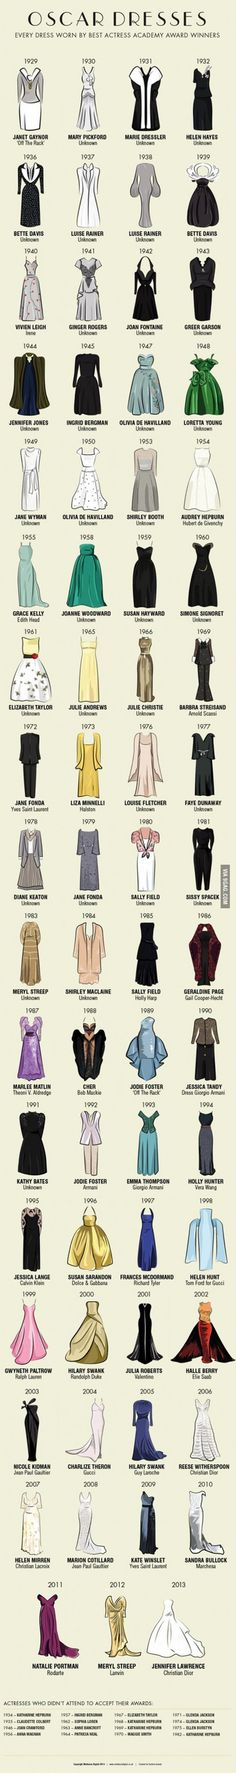 Every Dress Worn by Best Actress Oscar Winners, Although it is not essential Art Deco but interesting. Fashion 101, Fashion History, Fashion Details, Fashion Models, Fashion Design, Vintage Dresses, Vintage Outfits, Vintage Fashion, Best Actress Oscar